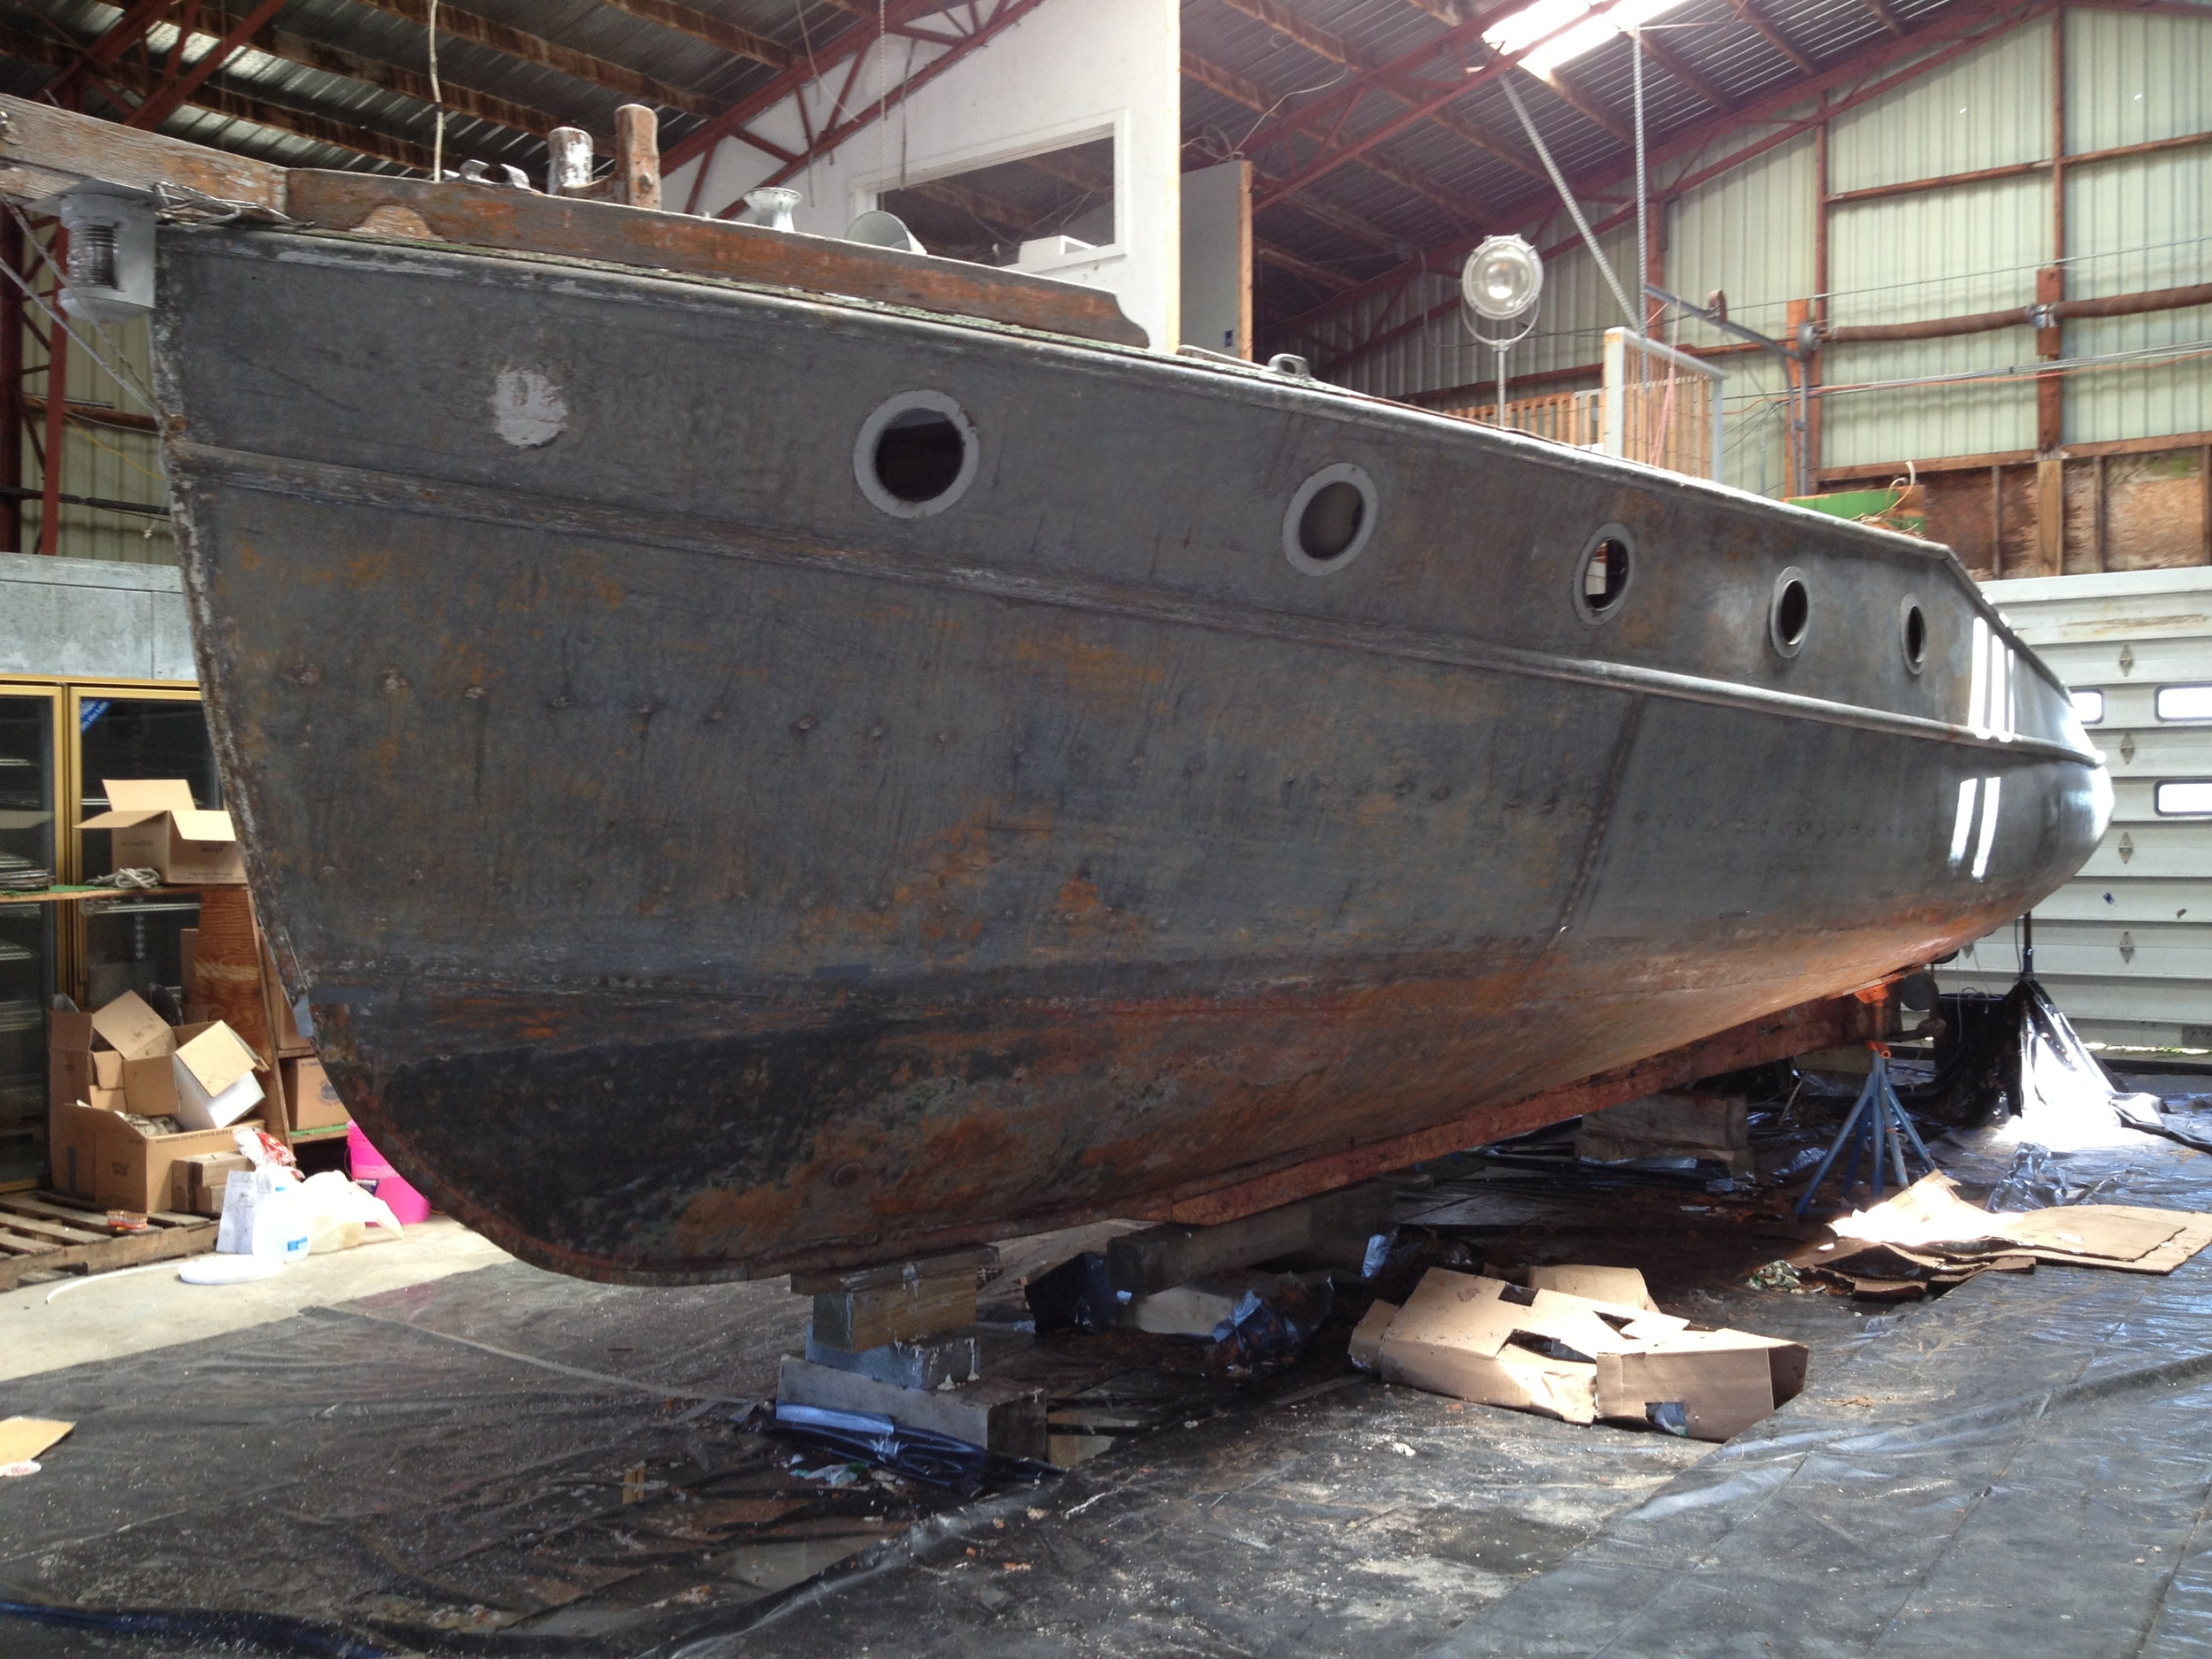 The galvanized iron hull, stripped of the old paint.